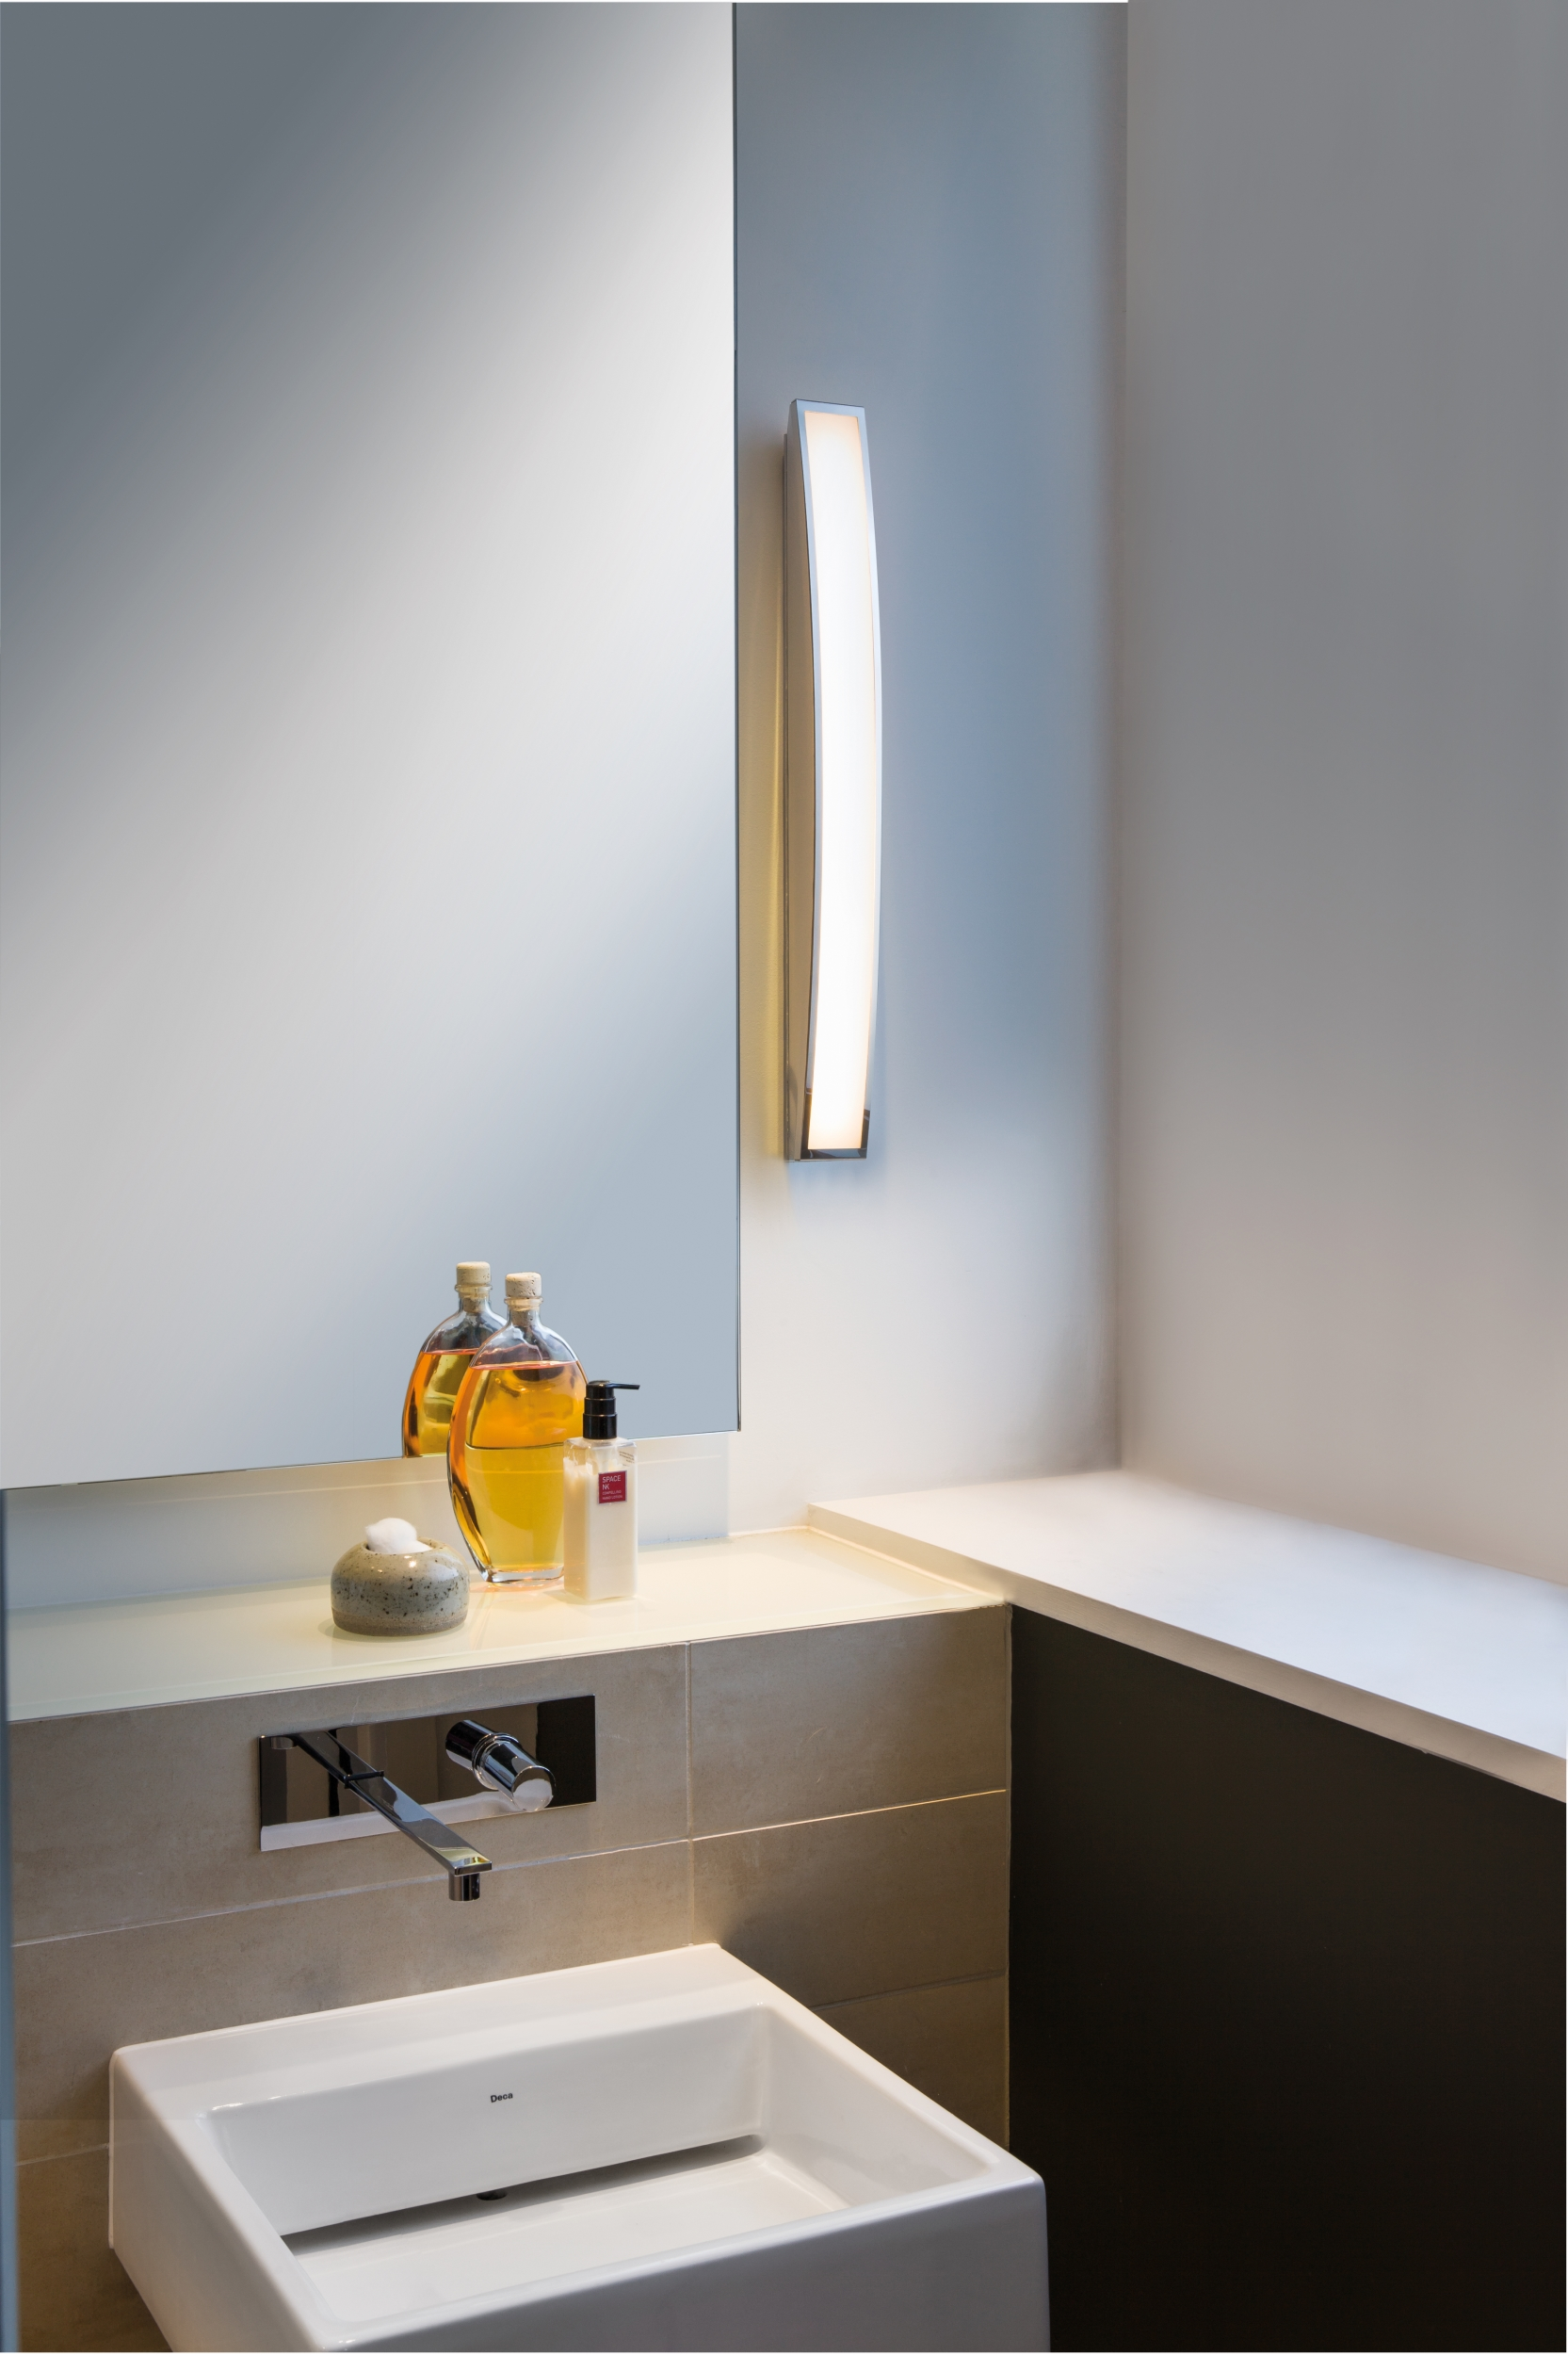 Astro Chord  bathroom warm white LED over mirror wall light 7.2W Polished chrome Thumbnail 2